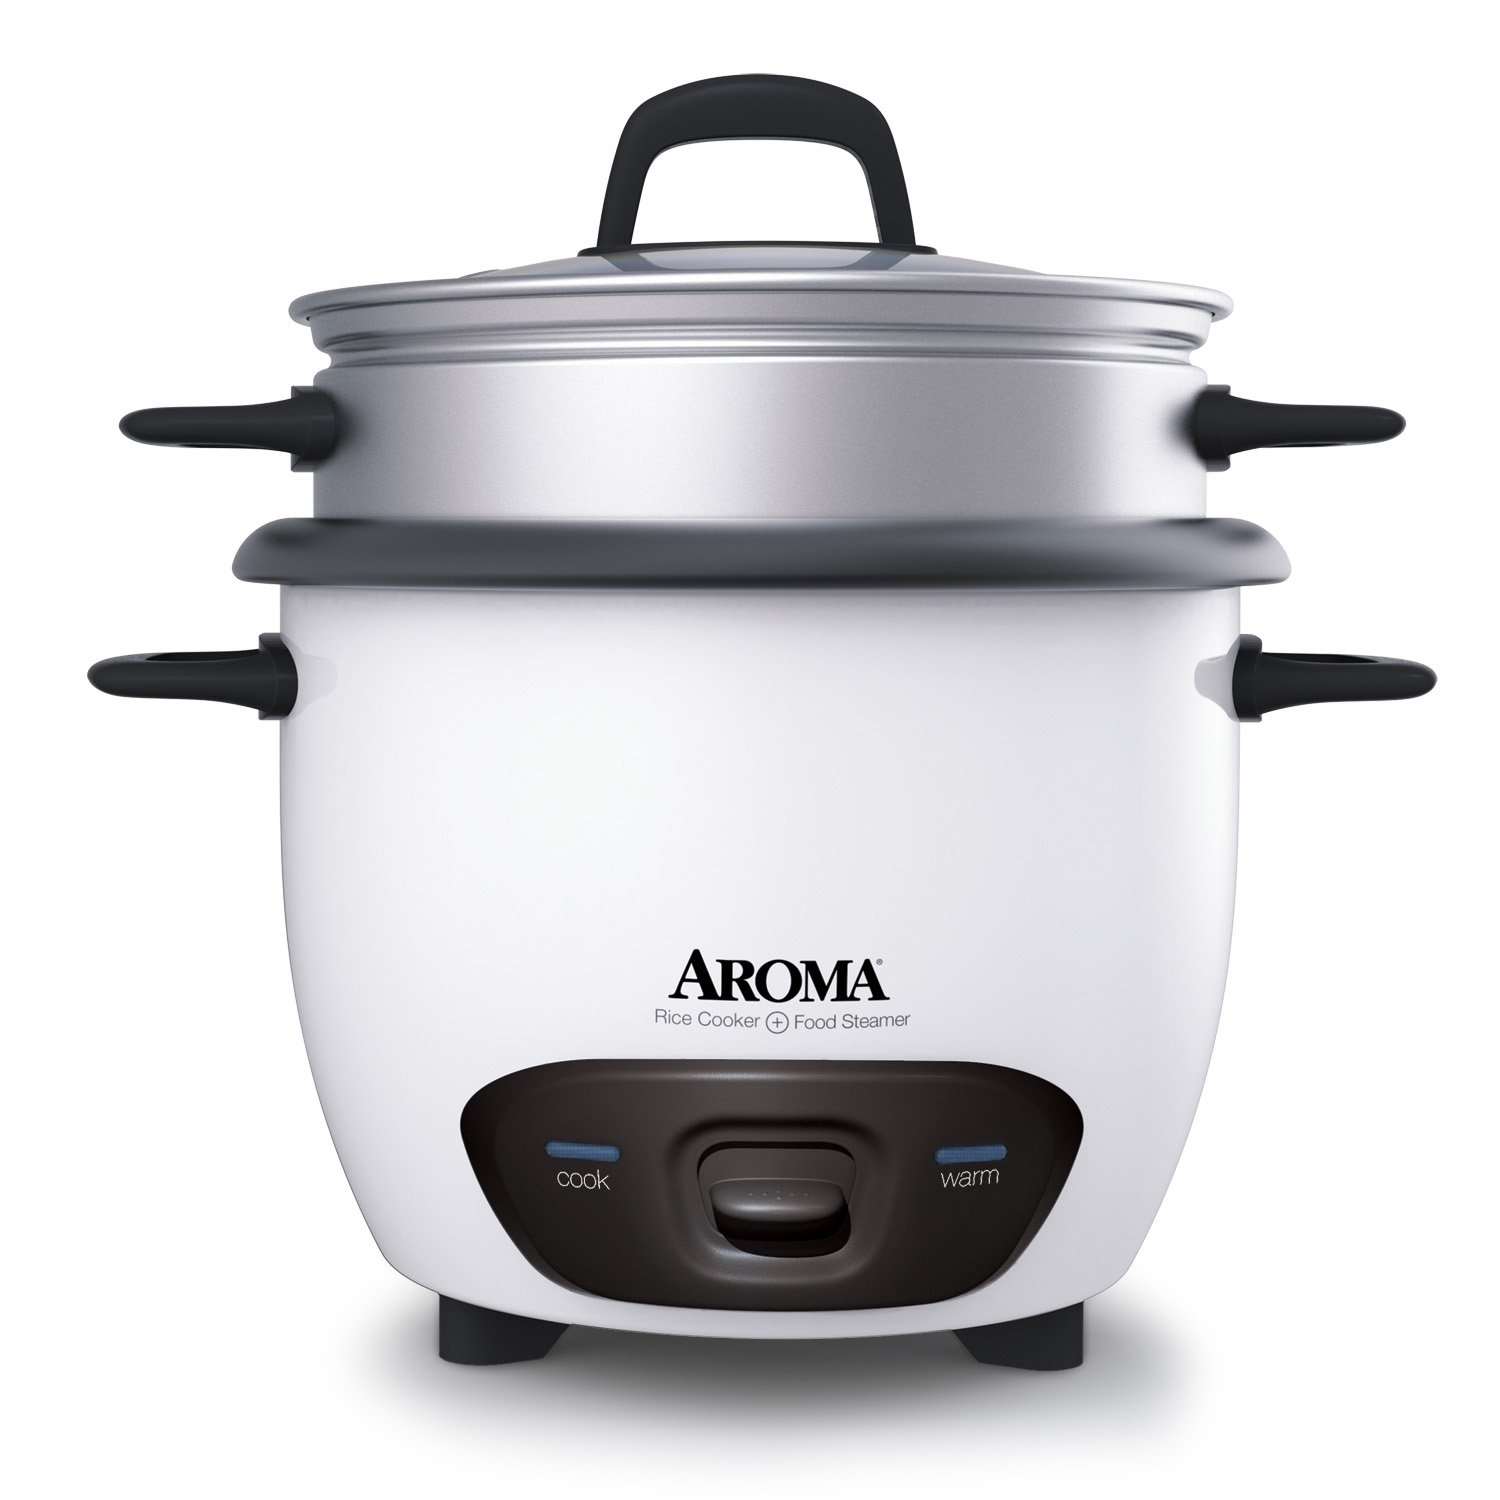 Aroma Housewares 14-Cup (Cooked)(7-Cup UNCOOKED) Pot Style Rice Cooker and Food Steamer (ARC-747-1NG)